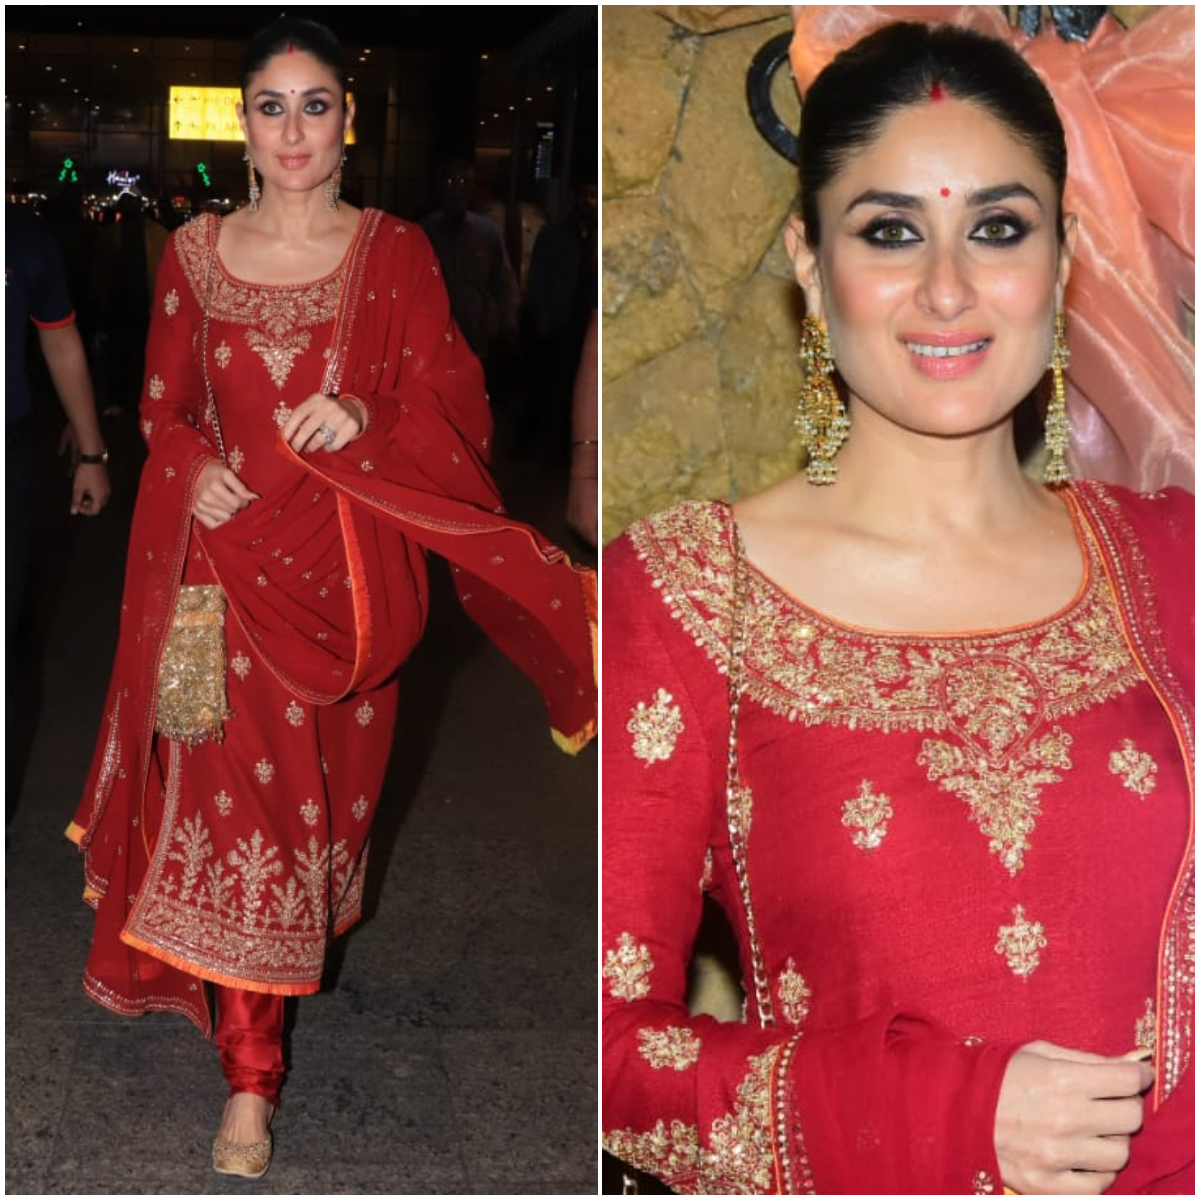 Kareena Kapoor Khan shows the world how to do desi right in Raghavendra Rathore; Yay or Nay?